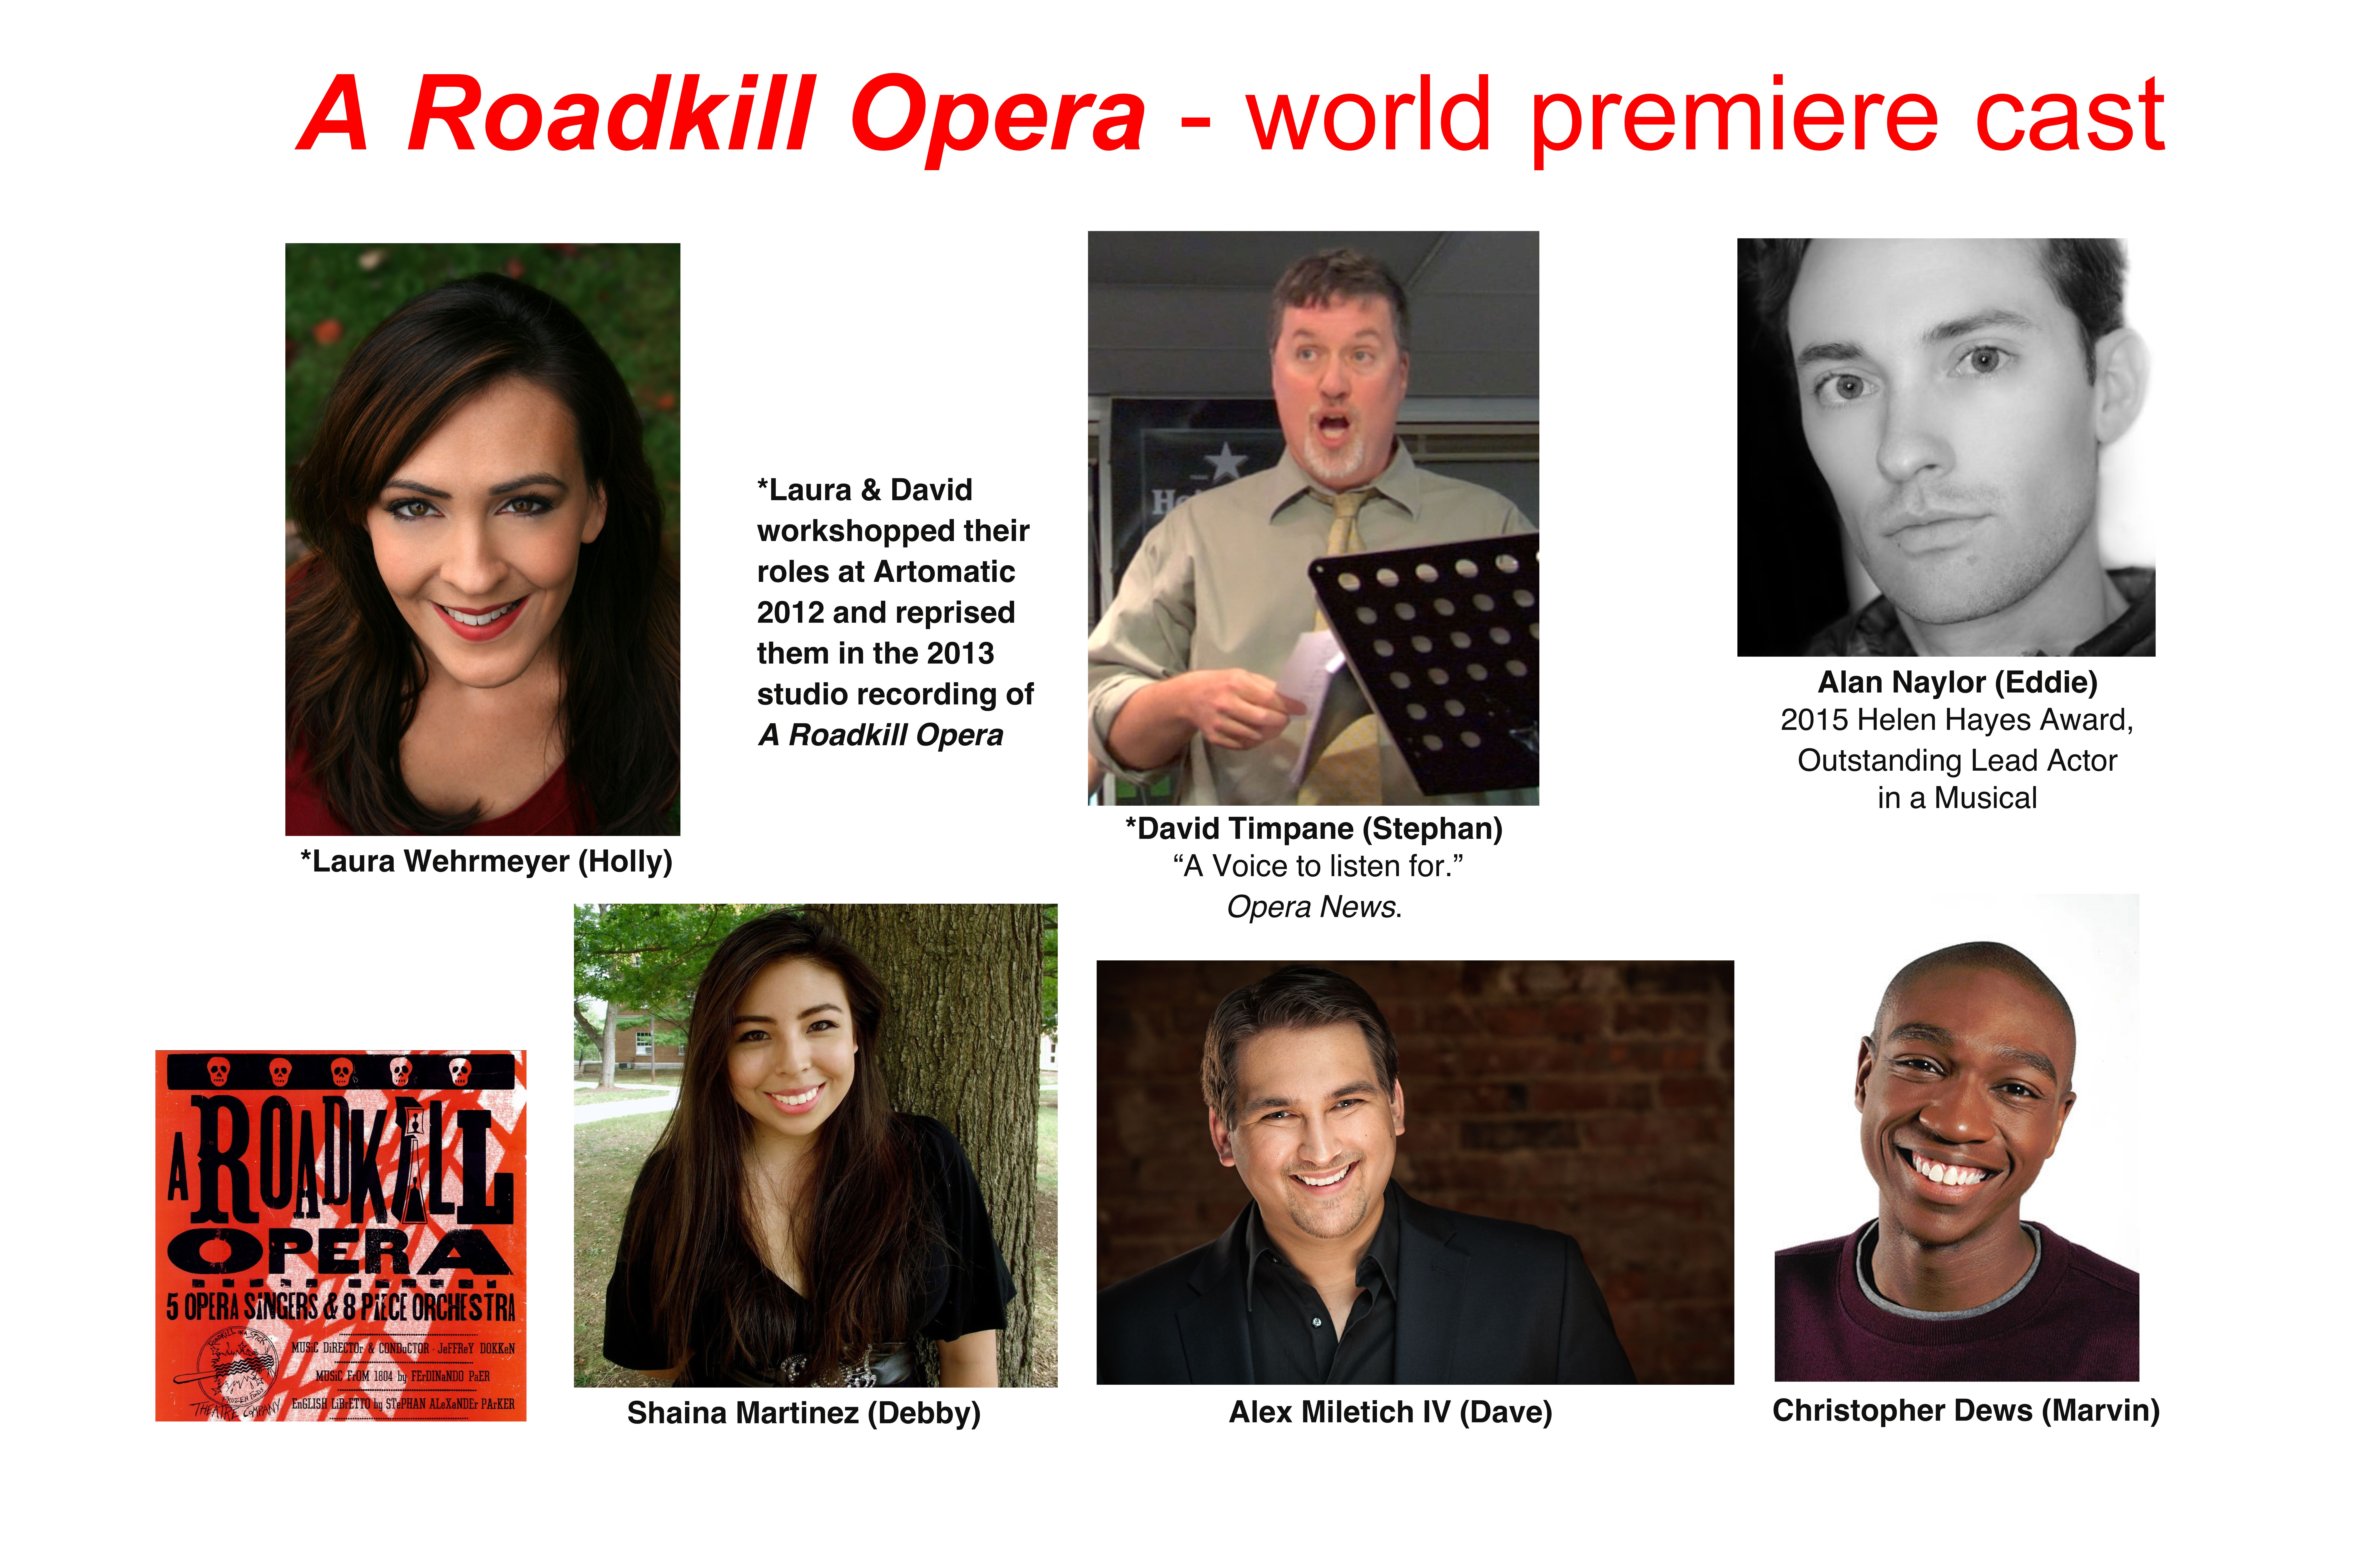 Photo showing head shots and names of the cast of A Roadkill Opera - world premiere performances